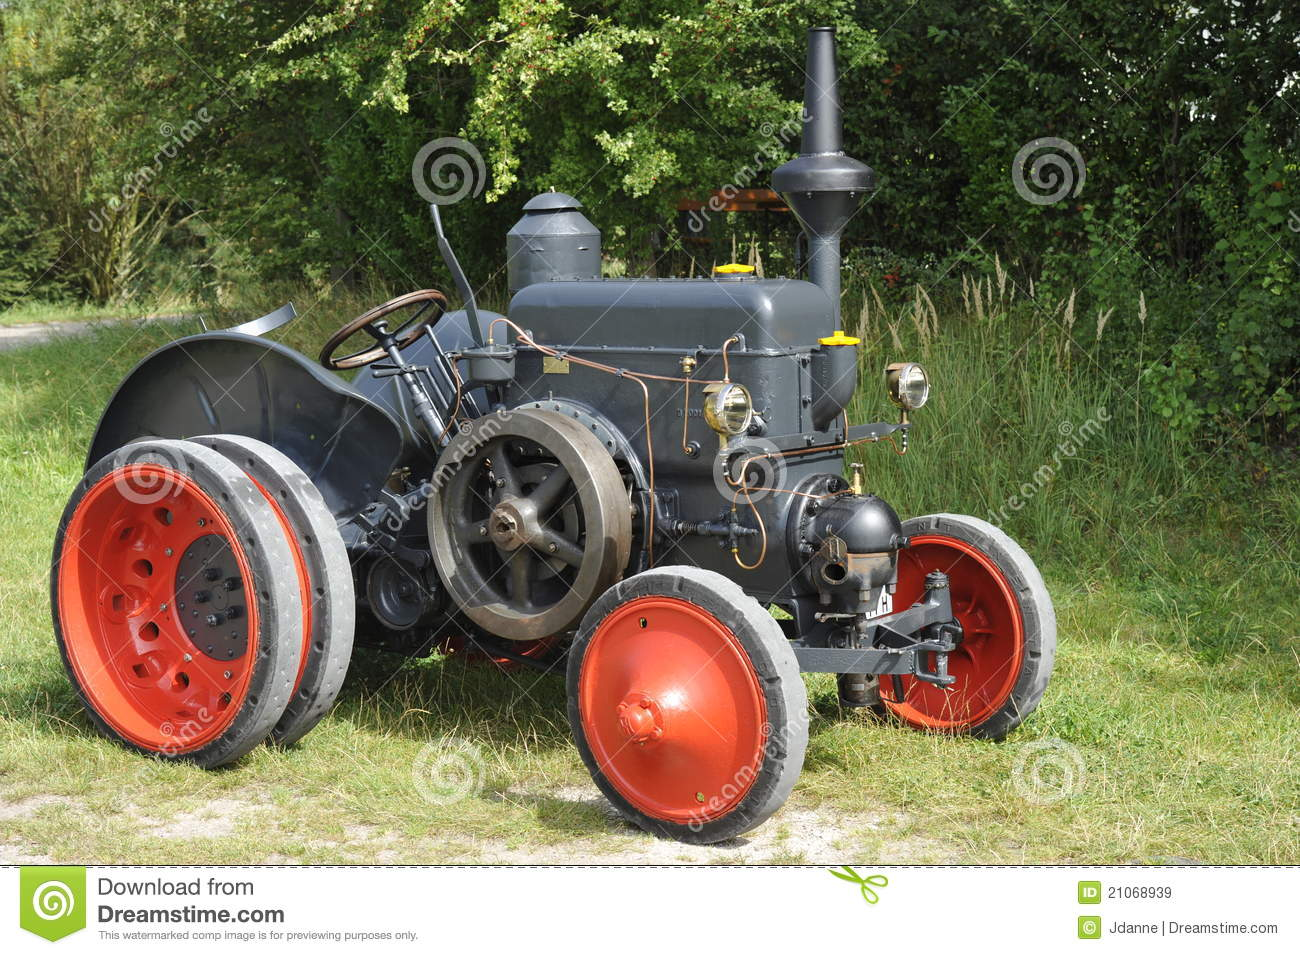 Thread Hydrocarbon Cracking System further 467110 Drycell Wetcell 16 further Royalty Free Stock Images Multifuel Traction Engine Lanz Hr2 Image21068939 furthermore 1b038d051fcacad6e64afc8aee29976c in addition Rouler Autrement. on paul pantone geet engine